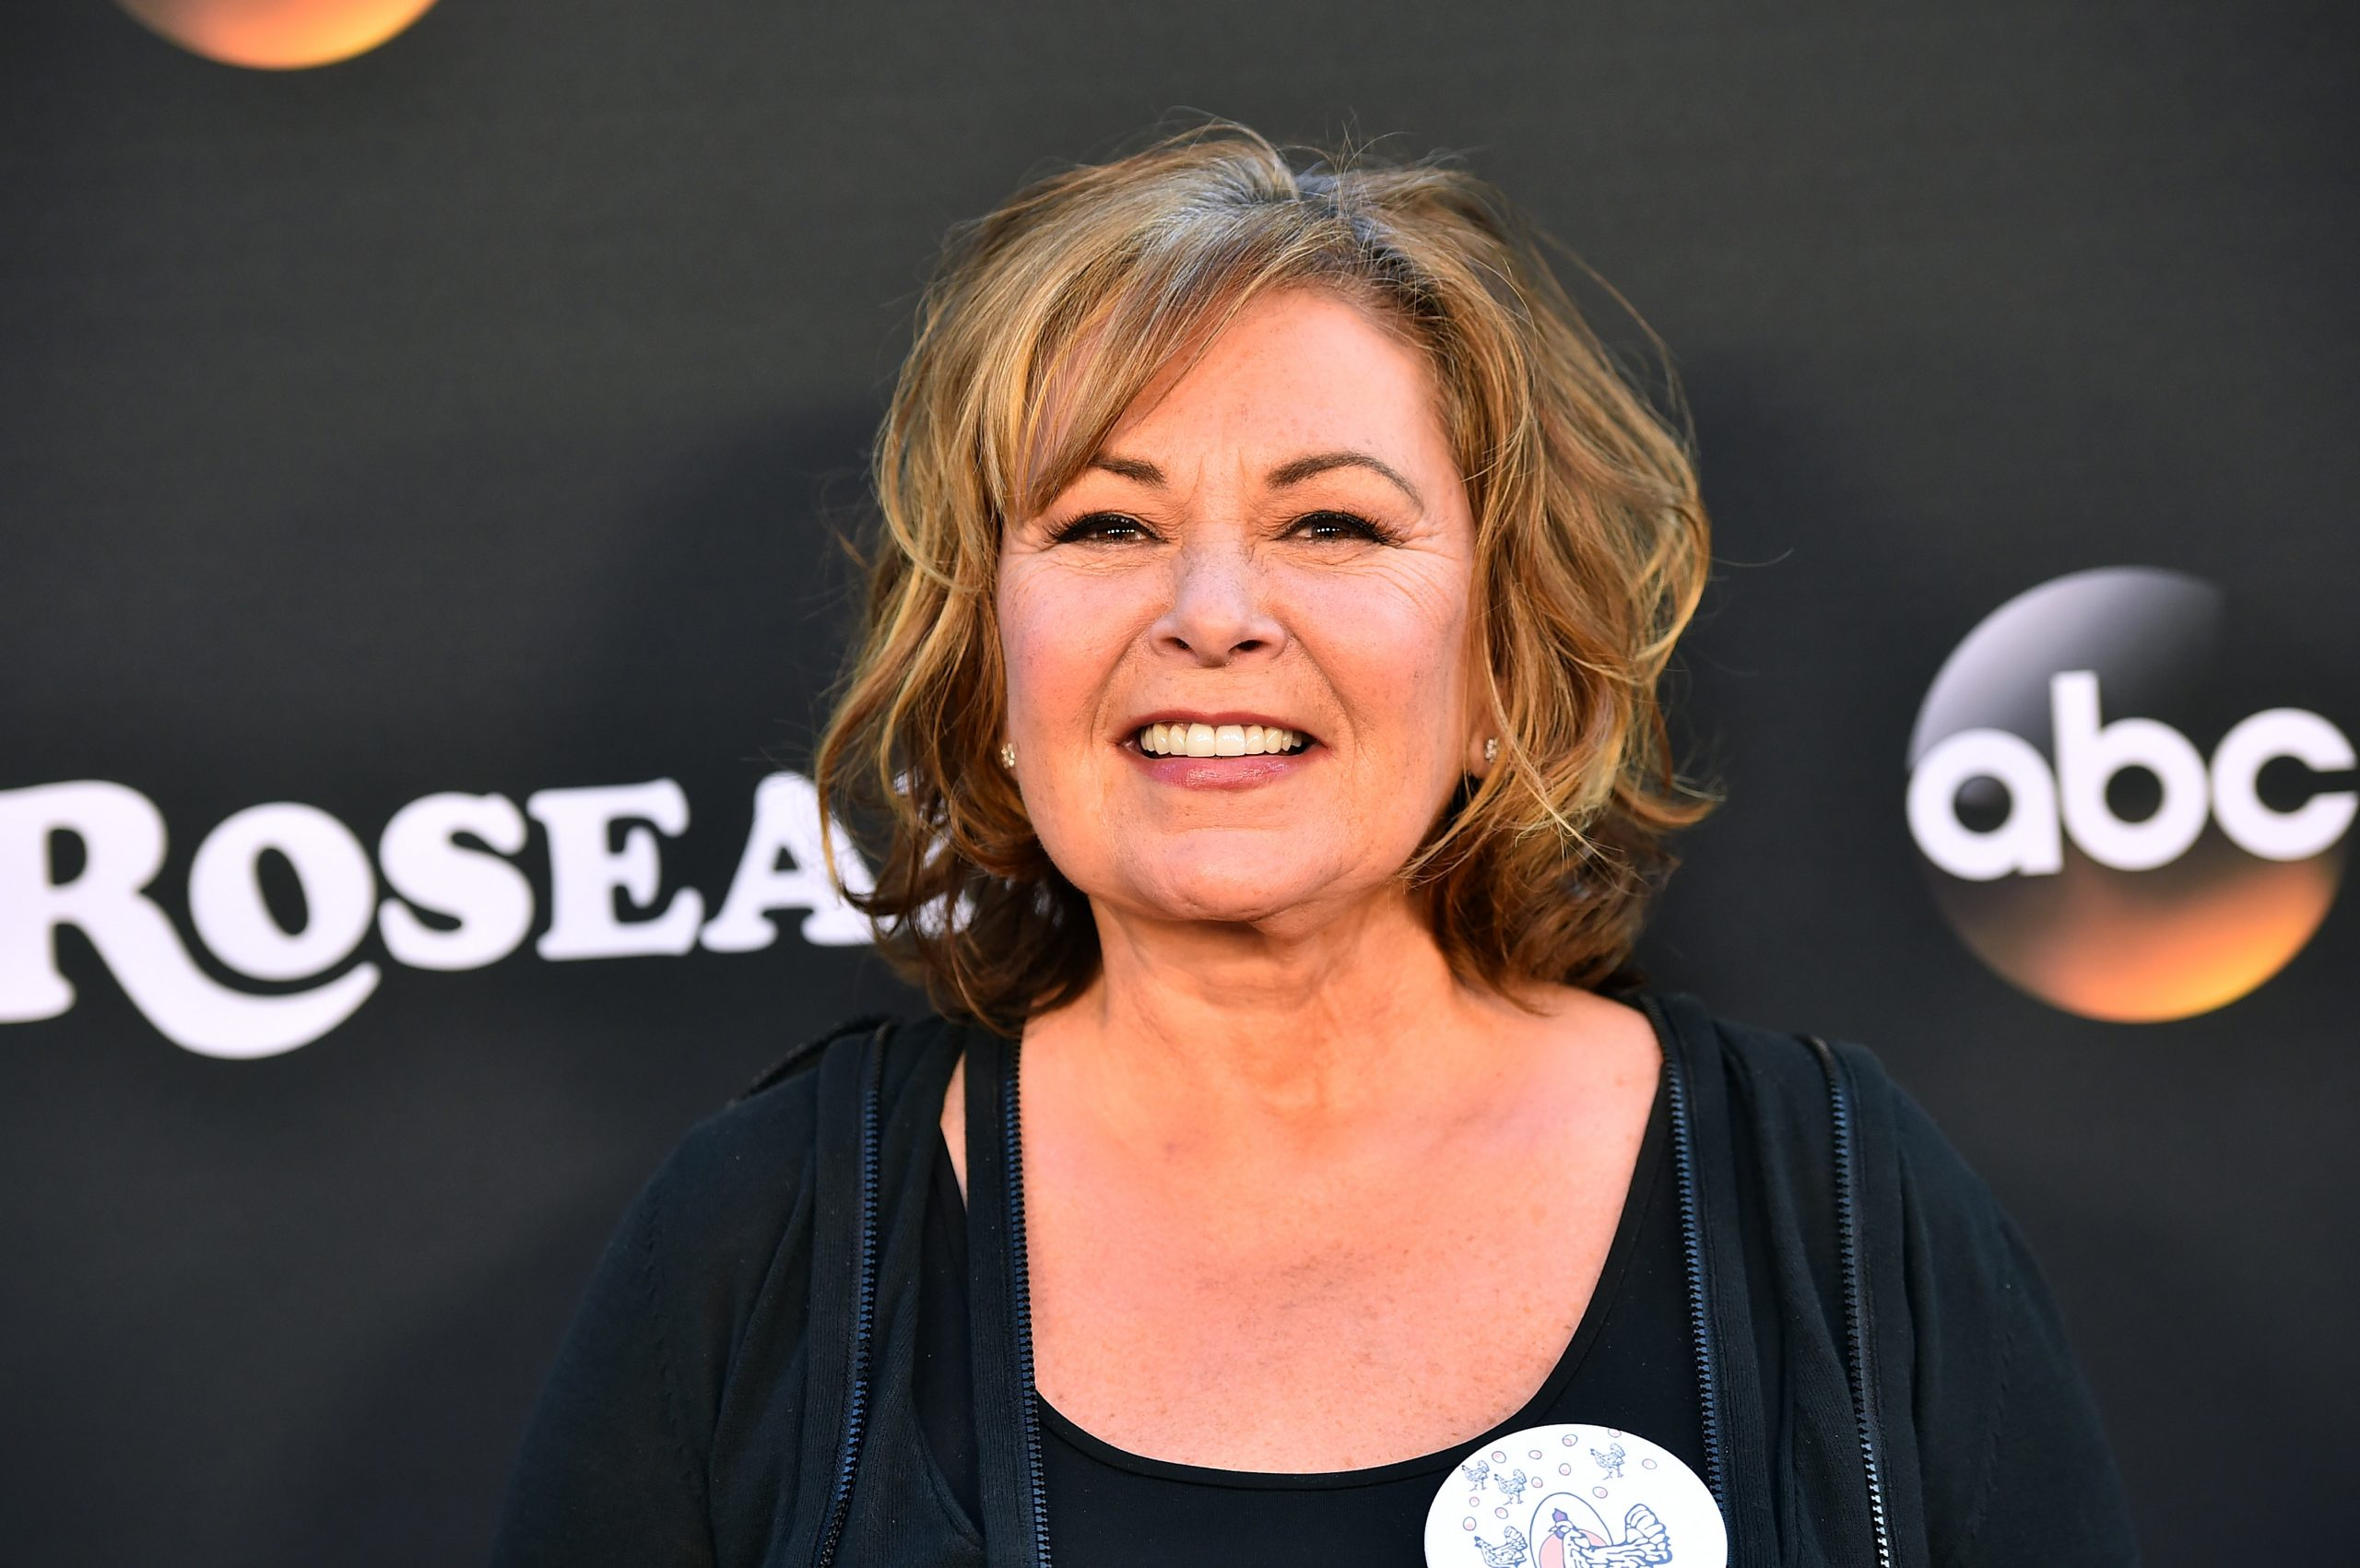 Hollywood Weekend News : No Show foe Roseanne - June 3rd, 2018